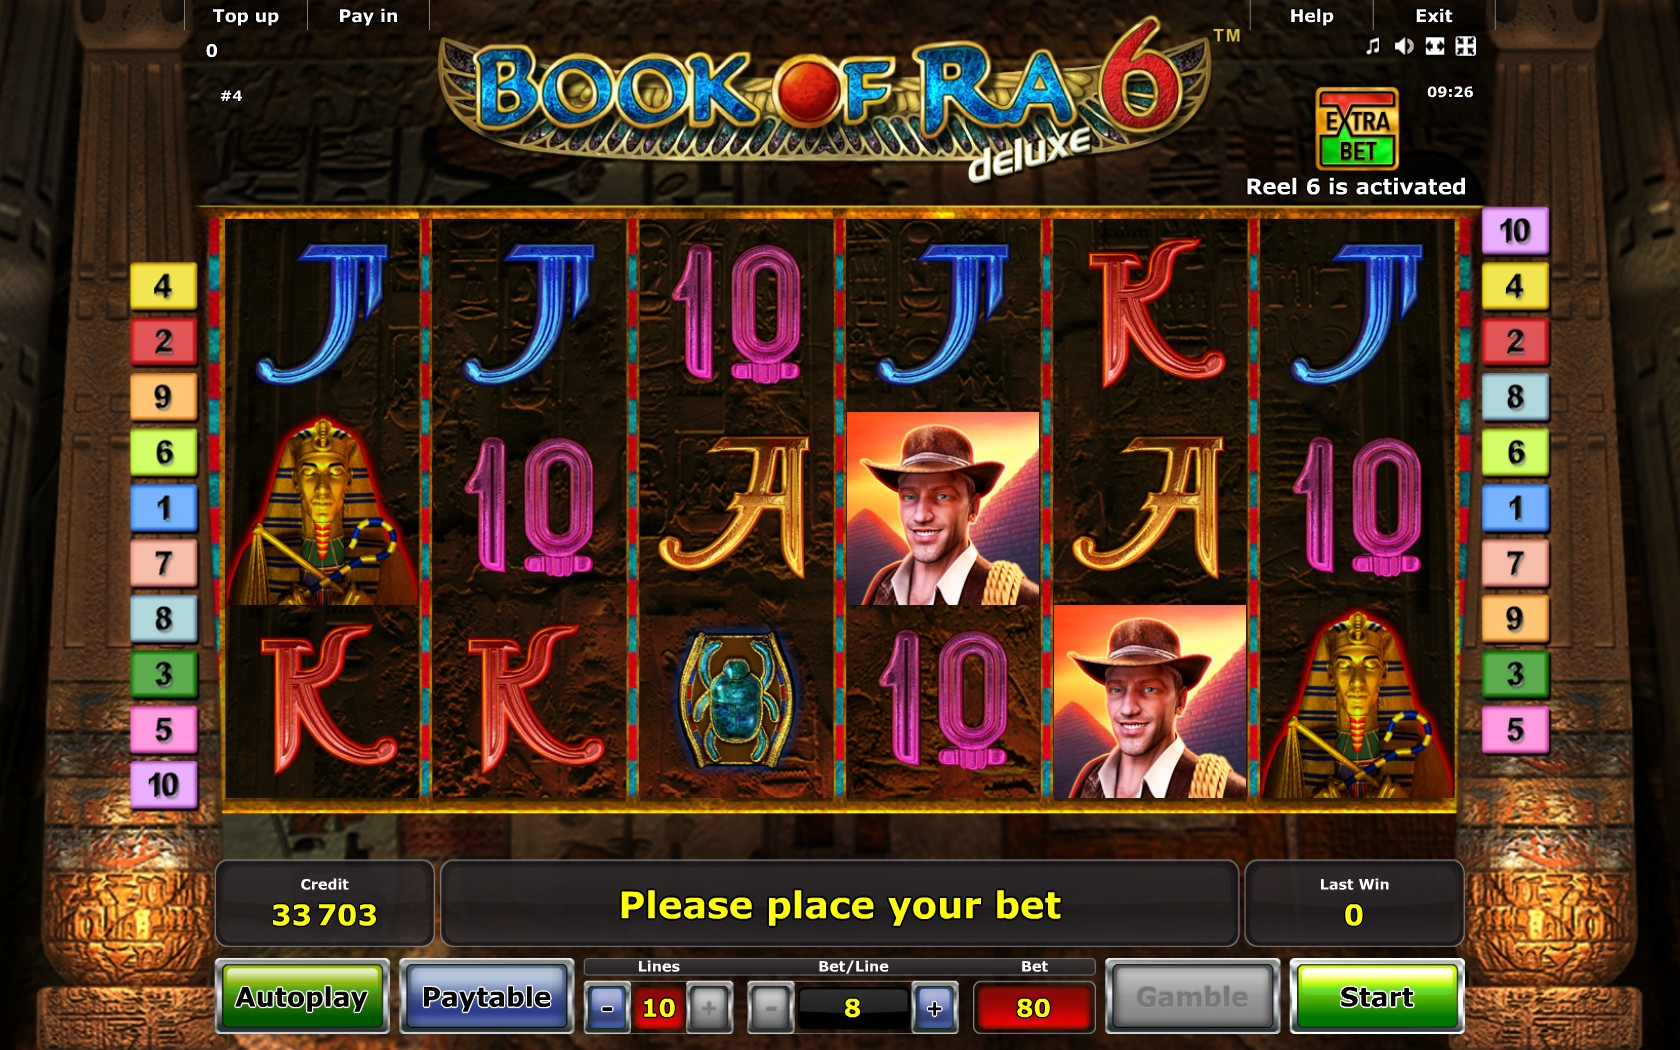 buy online casino casino games book of ra